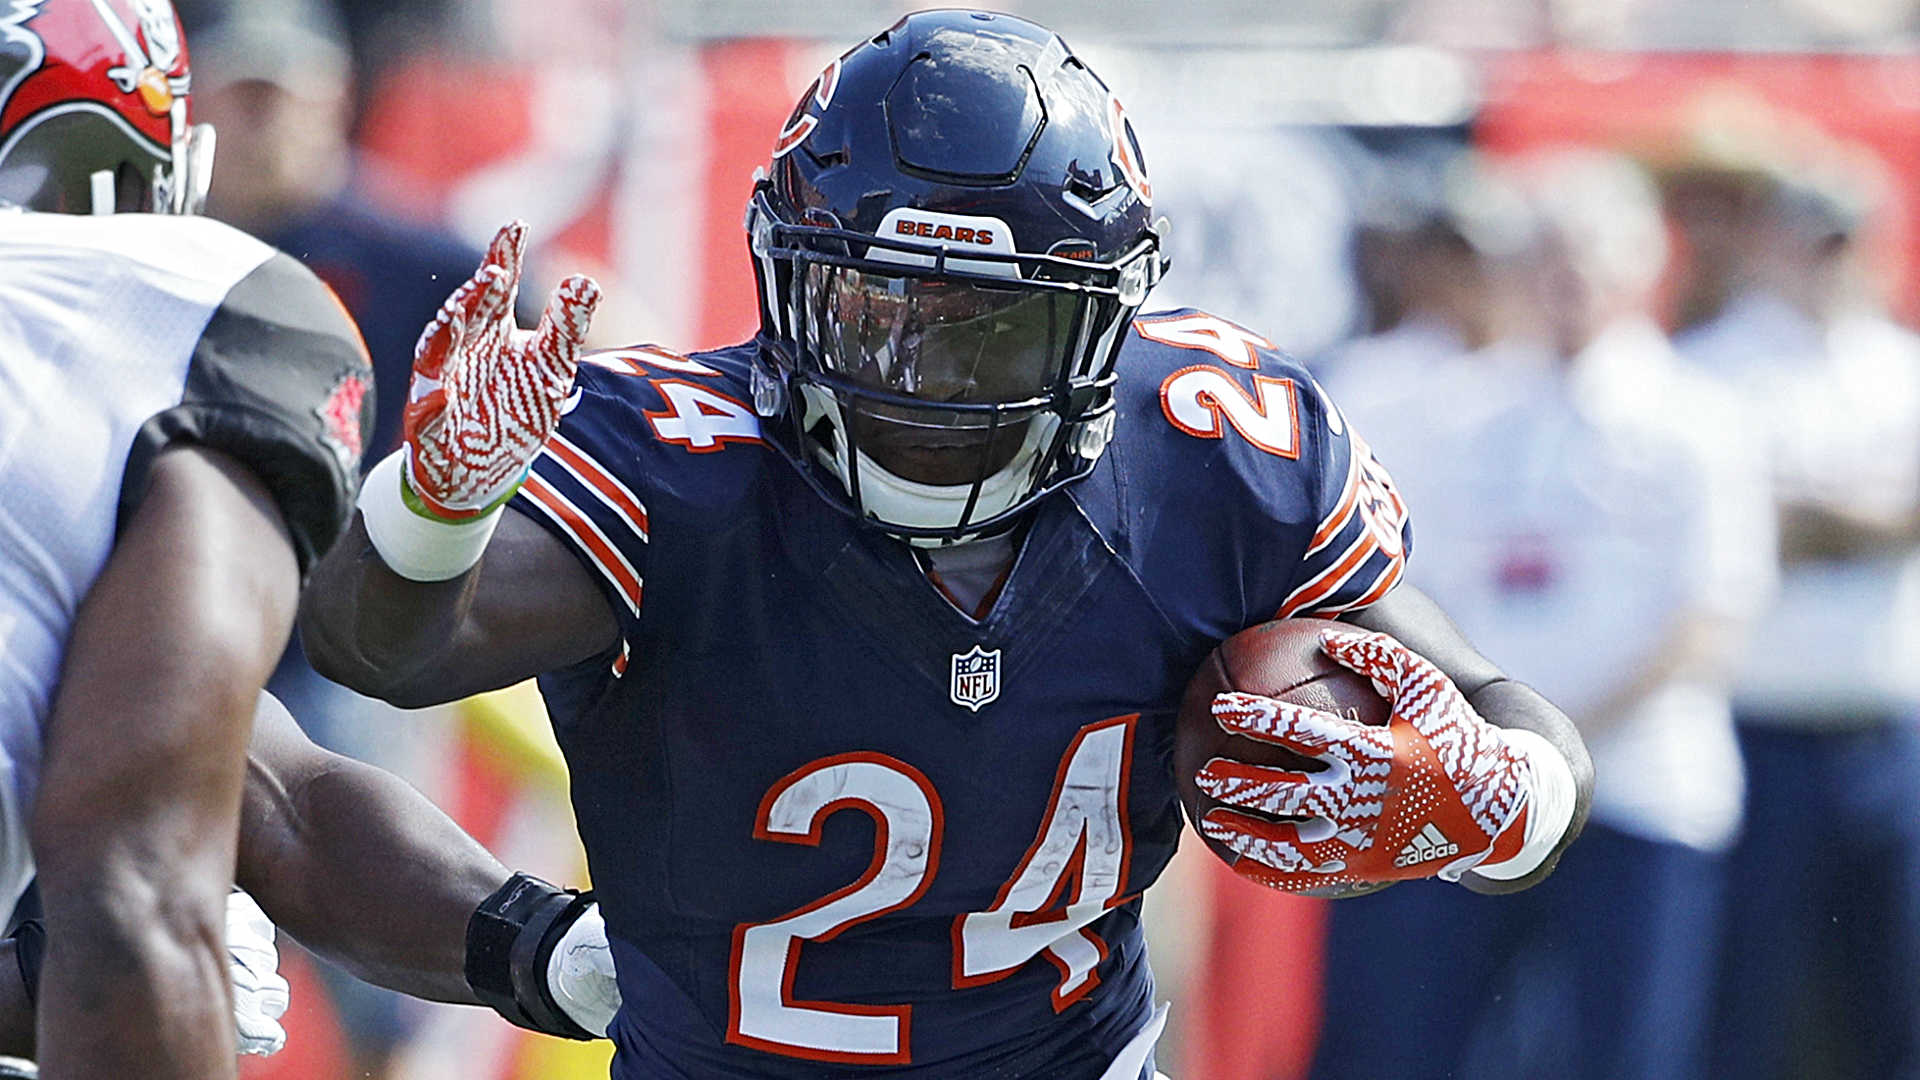 Martellus Bennett ruled out for 2nd week in a row